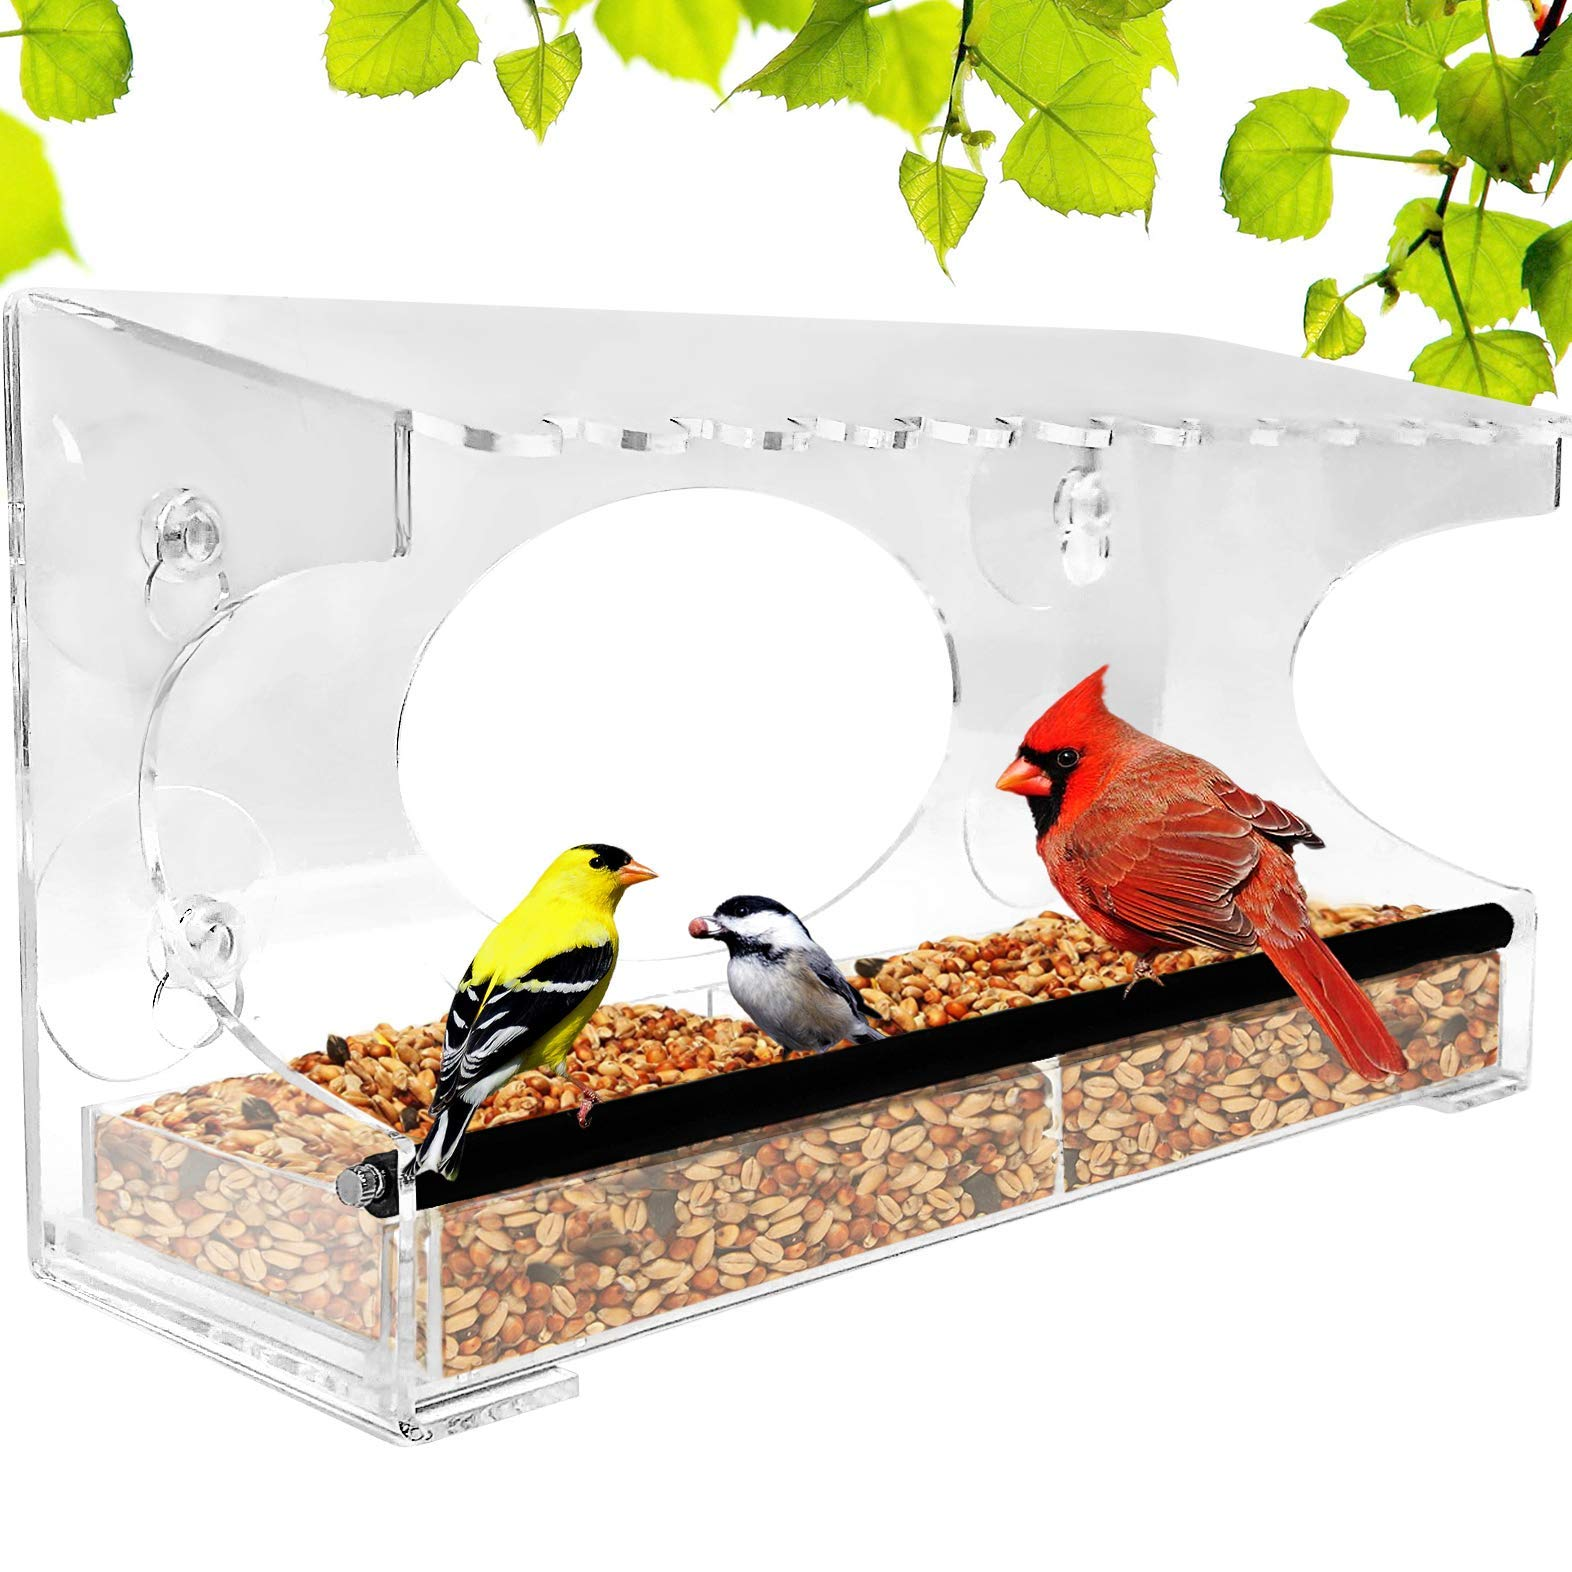 Nature Gear XL Window Bird Feeder - Extended Roof - Steel Perch - Sliding Feed Tray Drains Water - See Wild Birds Up Close! - Large